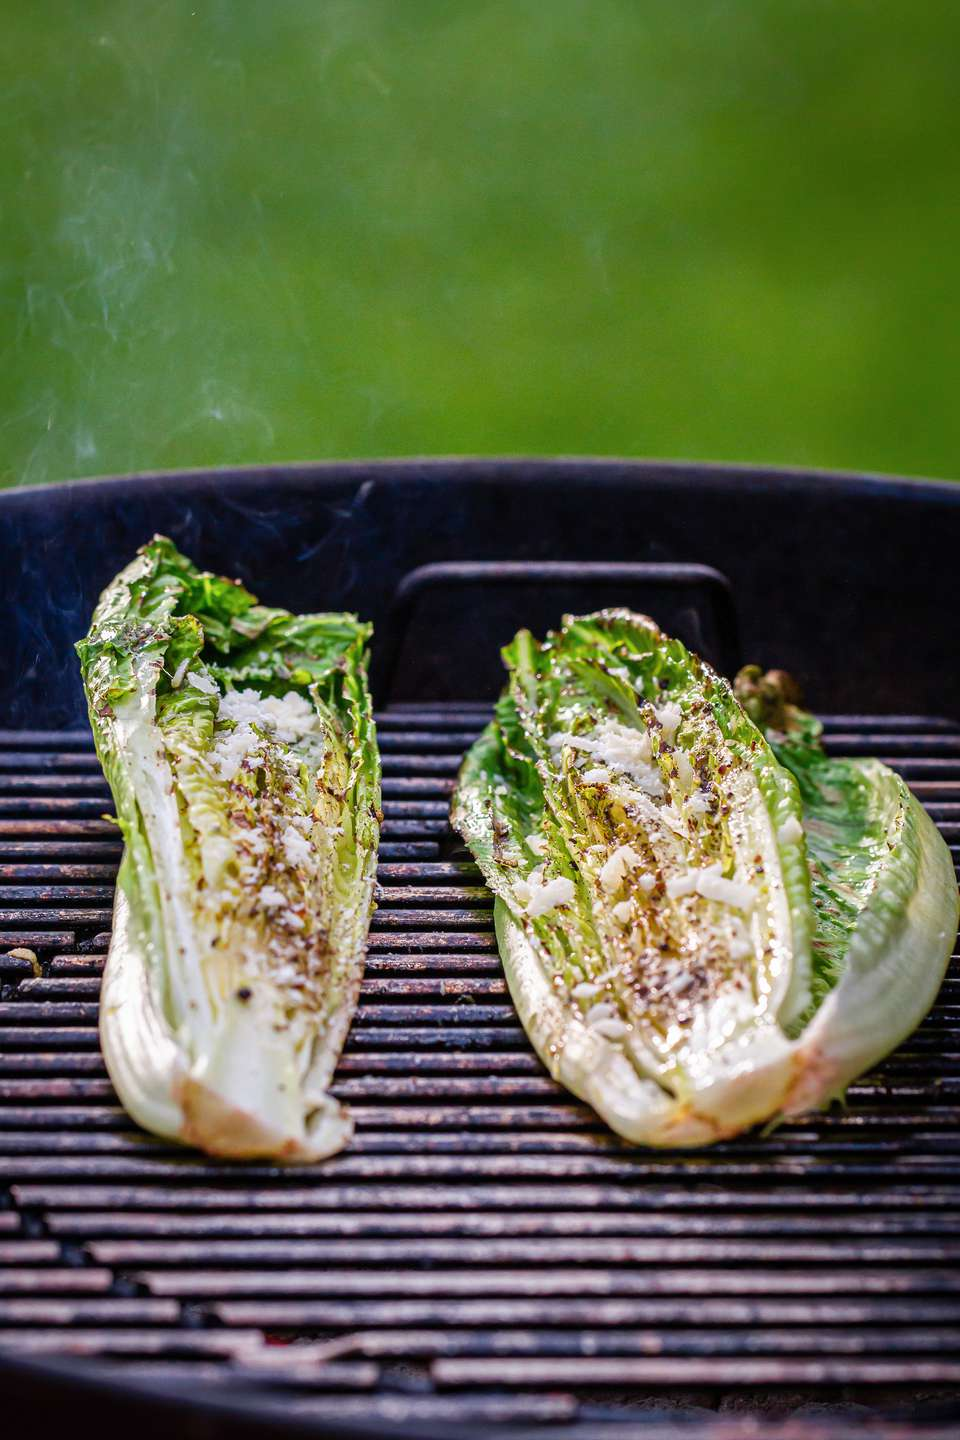 Grilled romaine lettuce on a Weber charcoal grill